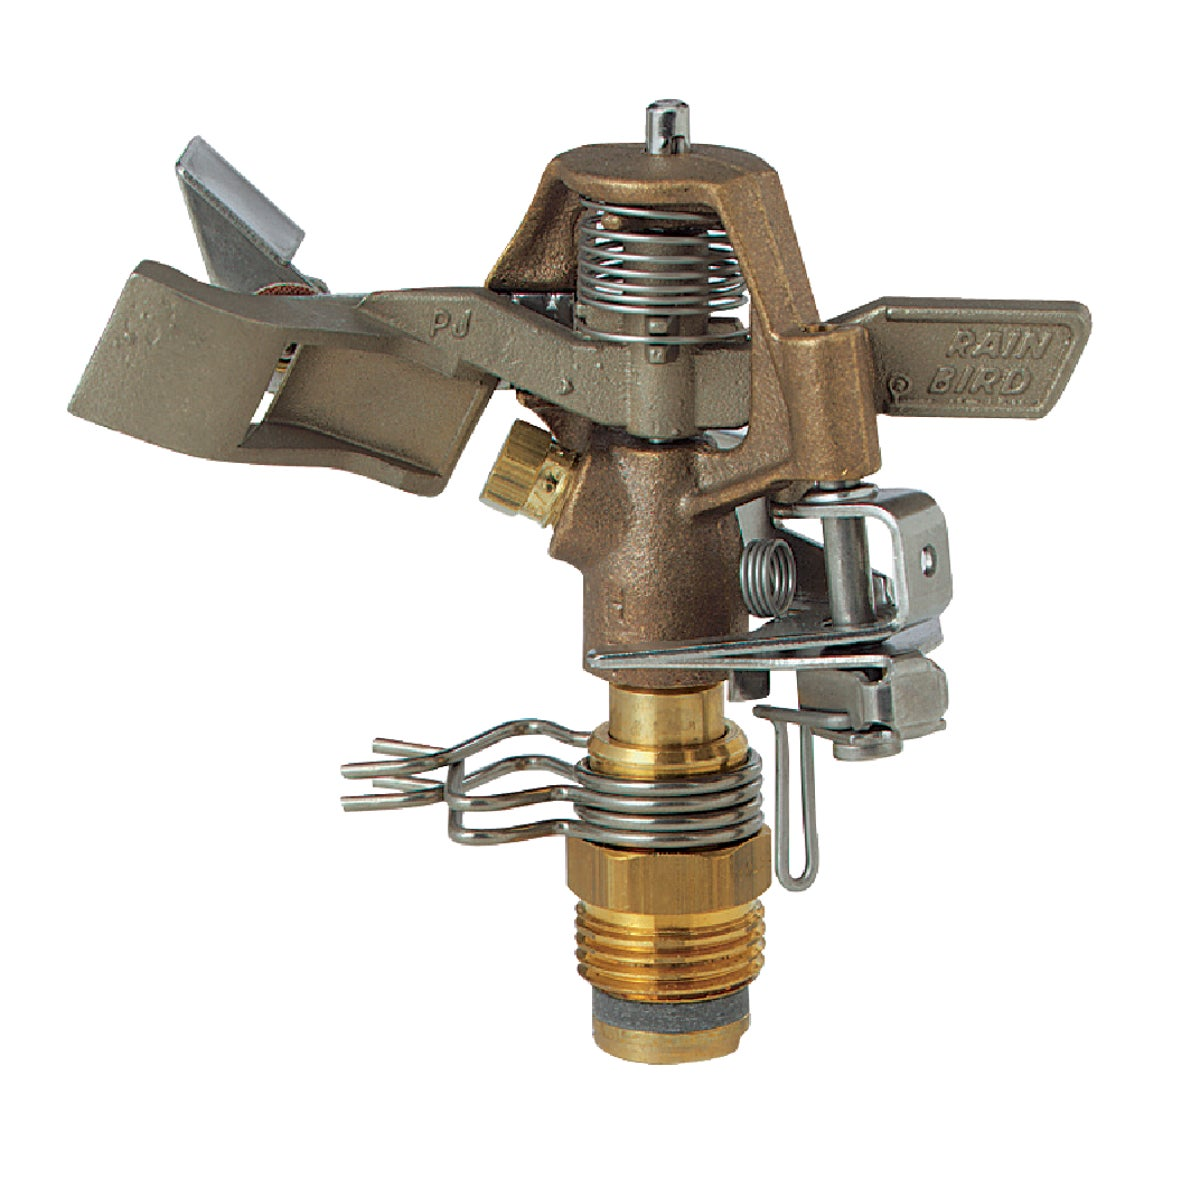 BRASS SPRINKLER HEAD - 25PJDA-C by Rain Bird Corp Consu